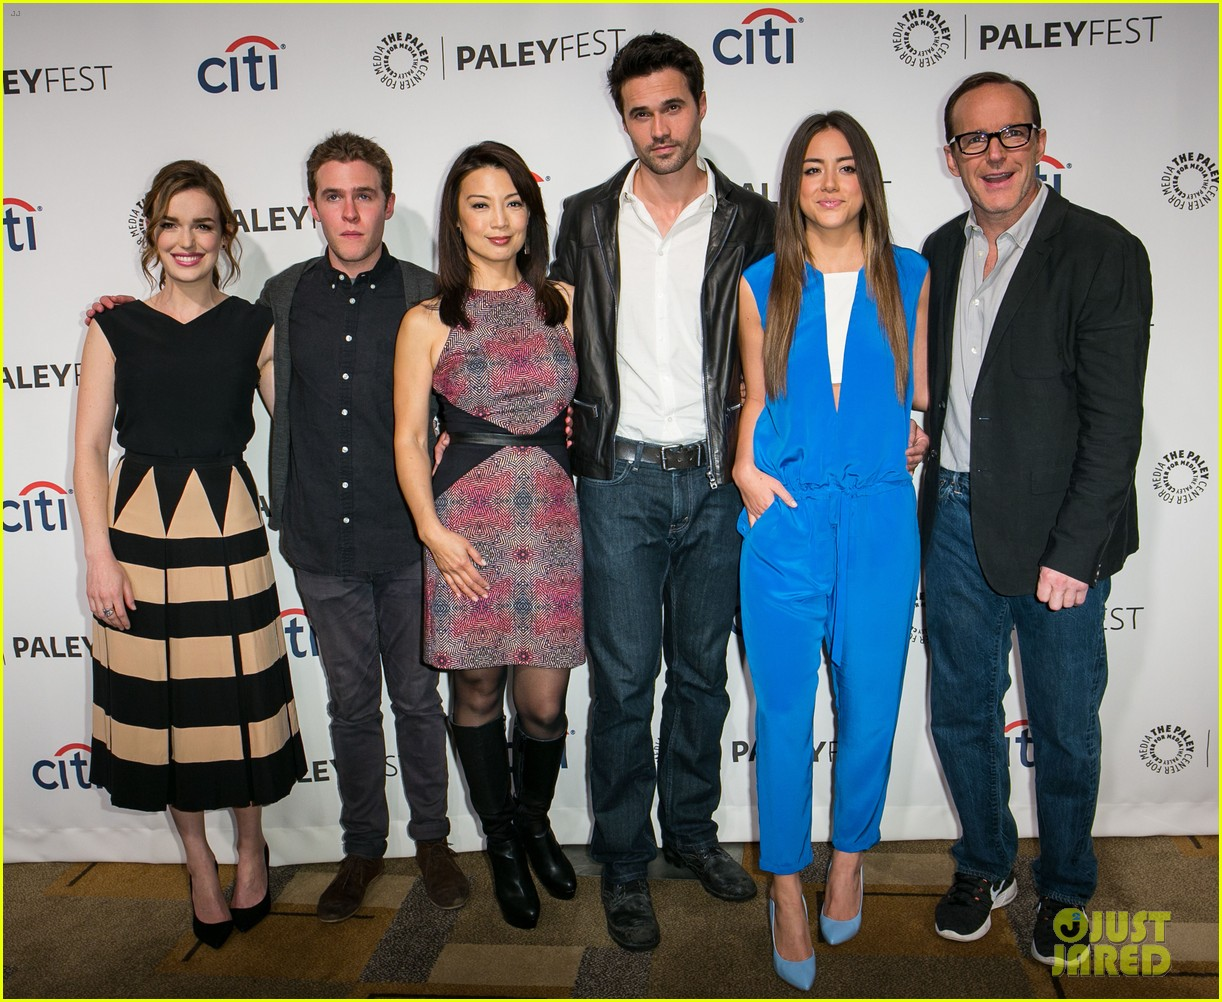 chloe bennet clark gregg promote agents of s h i e l d at paleyfest 10